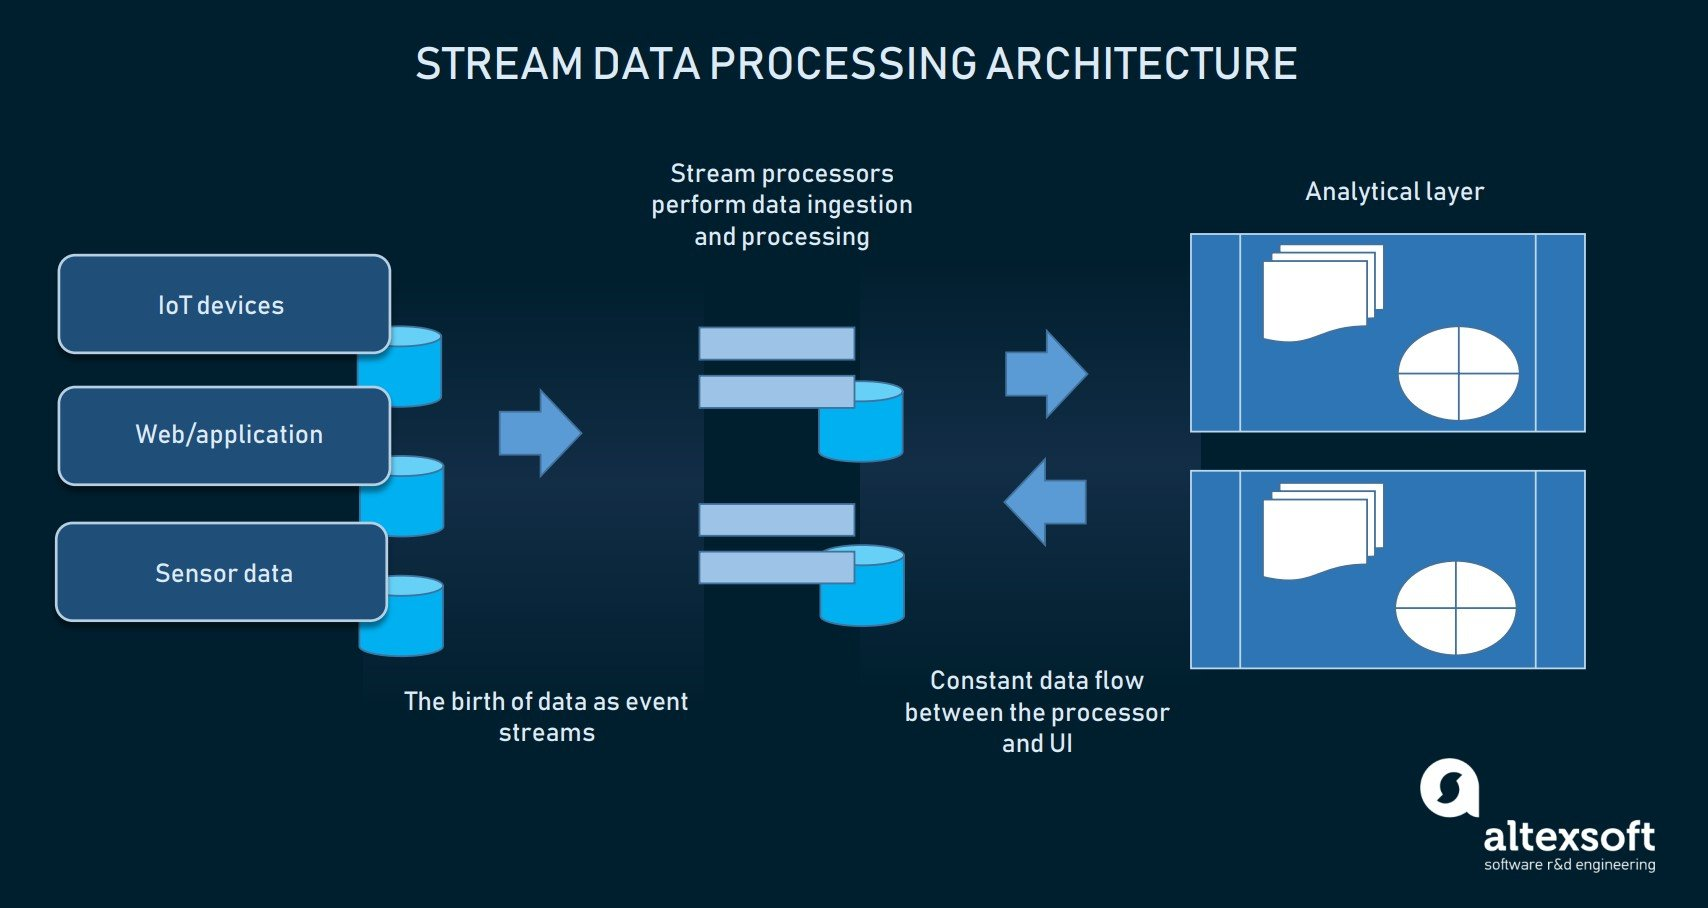 Stream processing architectural components